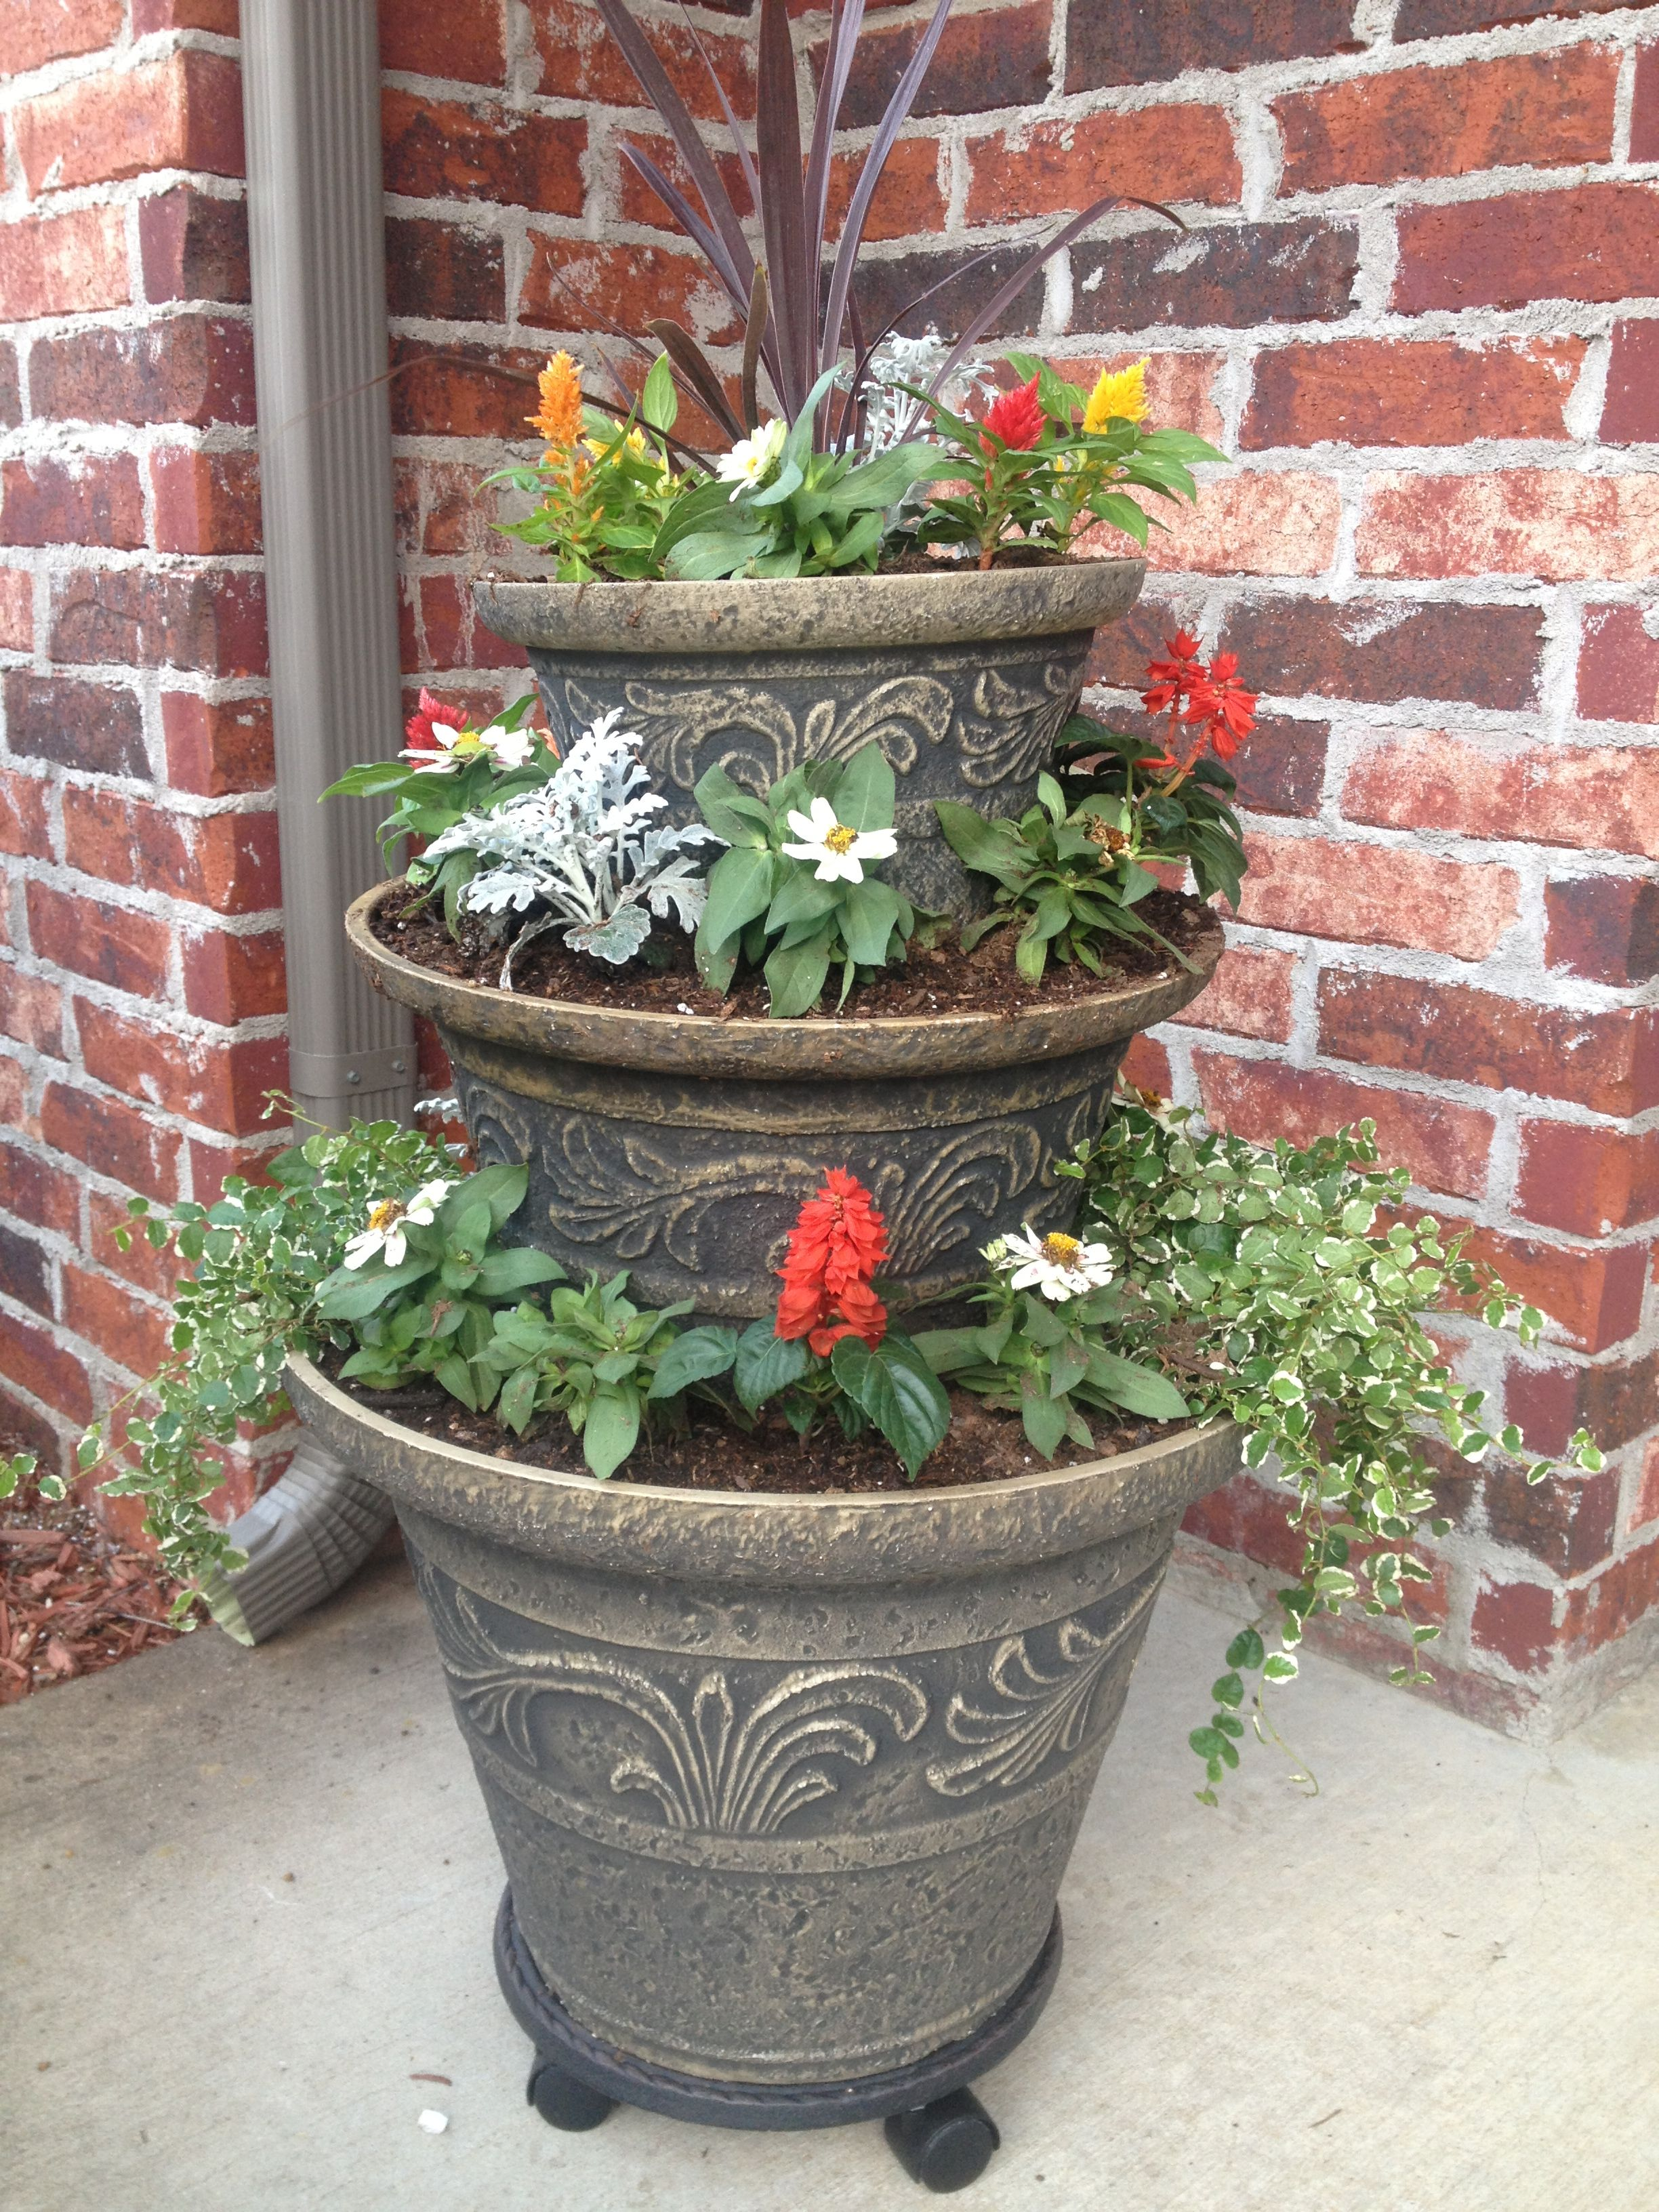 Three Tier Flower Pots My New 3 Tier Planter I Love It Flower Pots Tiered